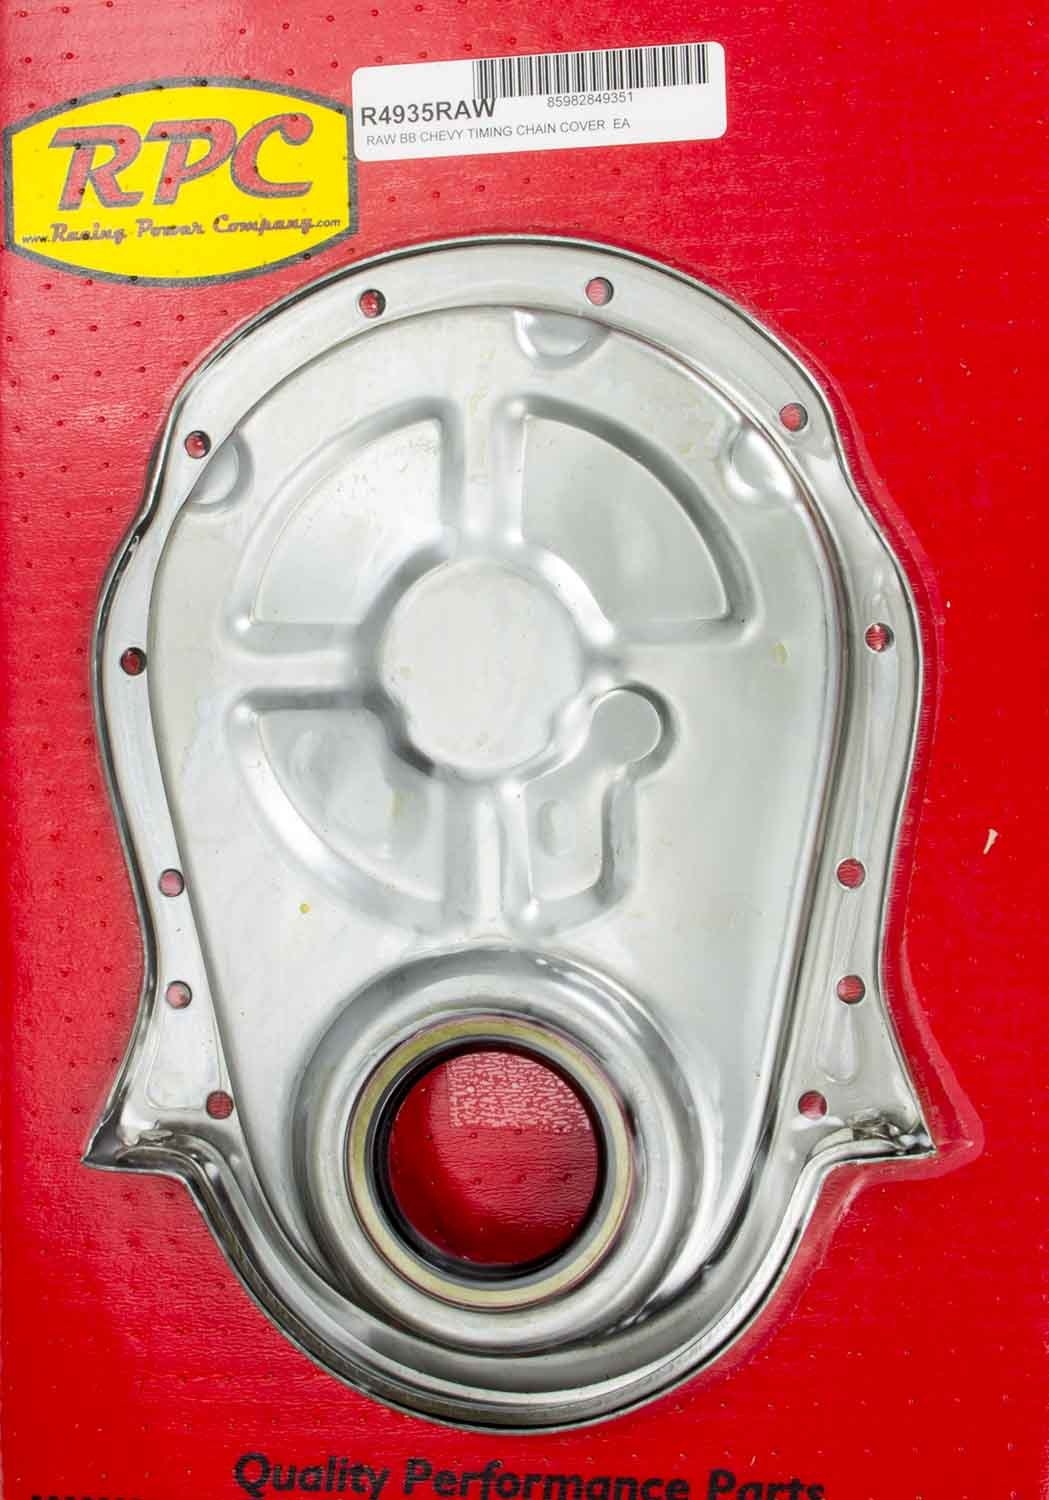 Racing Power Co-packaged BBC Steel Timing Chain Cover Unplated